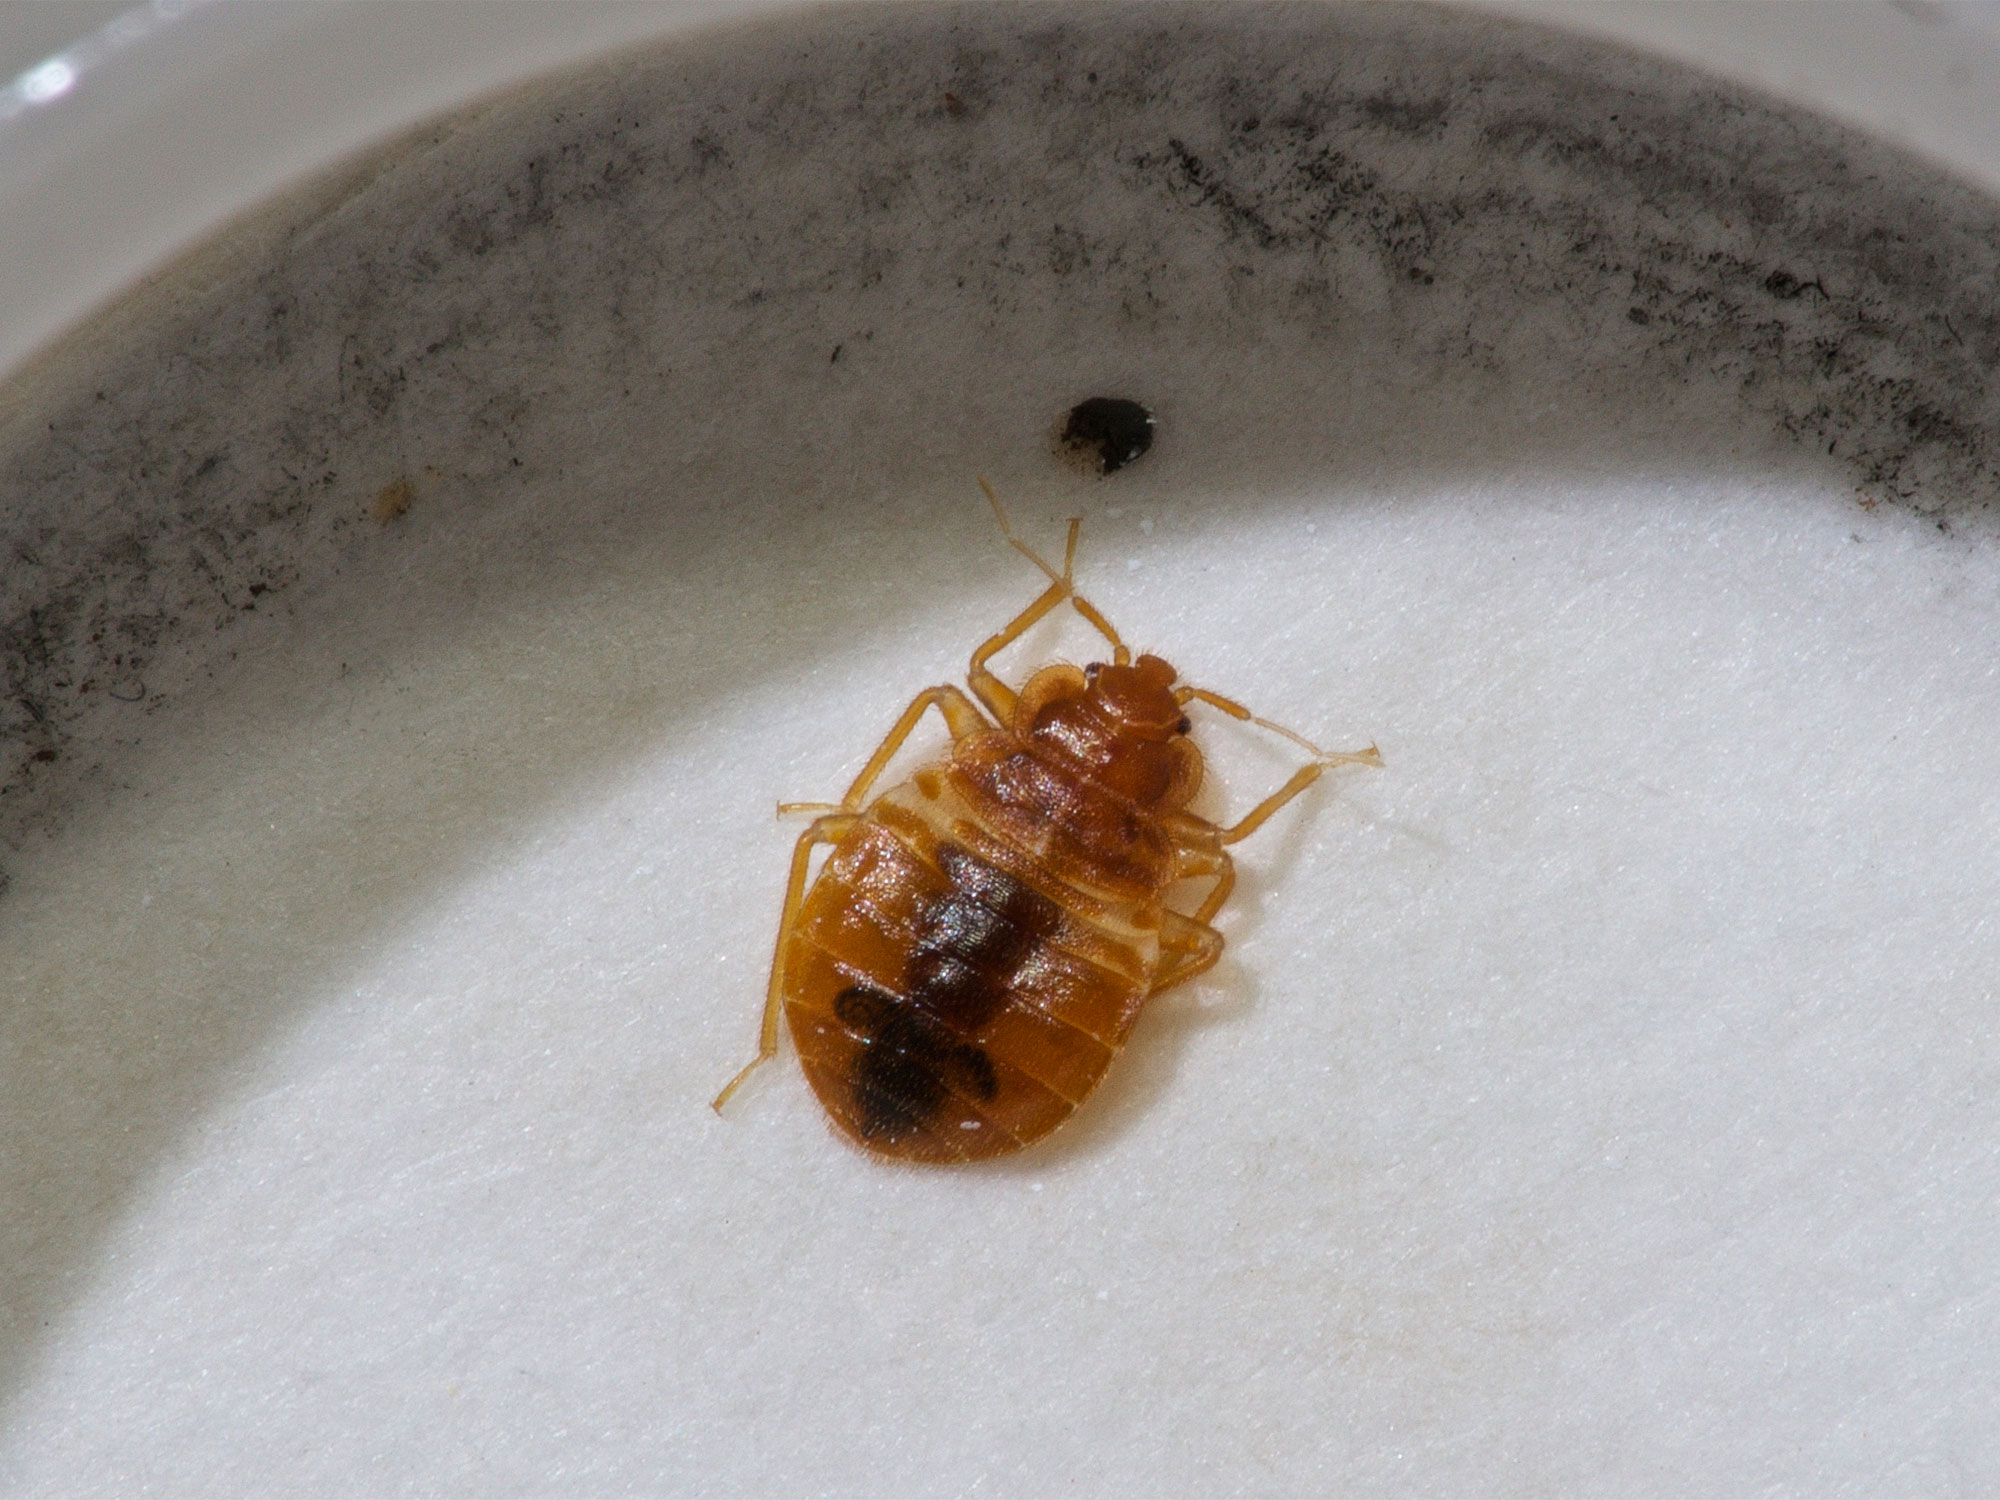 Getting Rid Of Bed Bugs How To Get Rid Of Bed Bugs Realestate Au